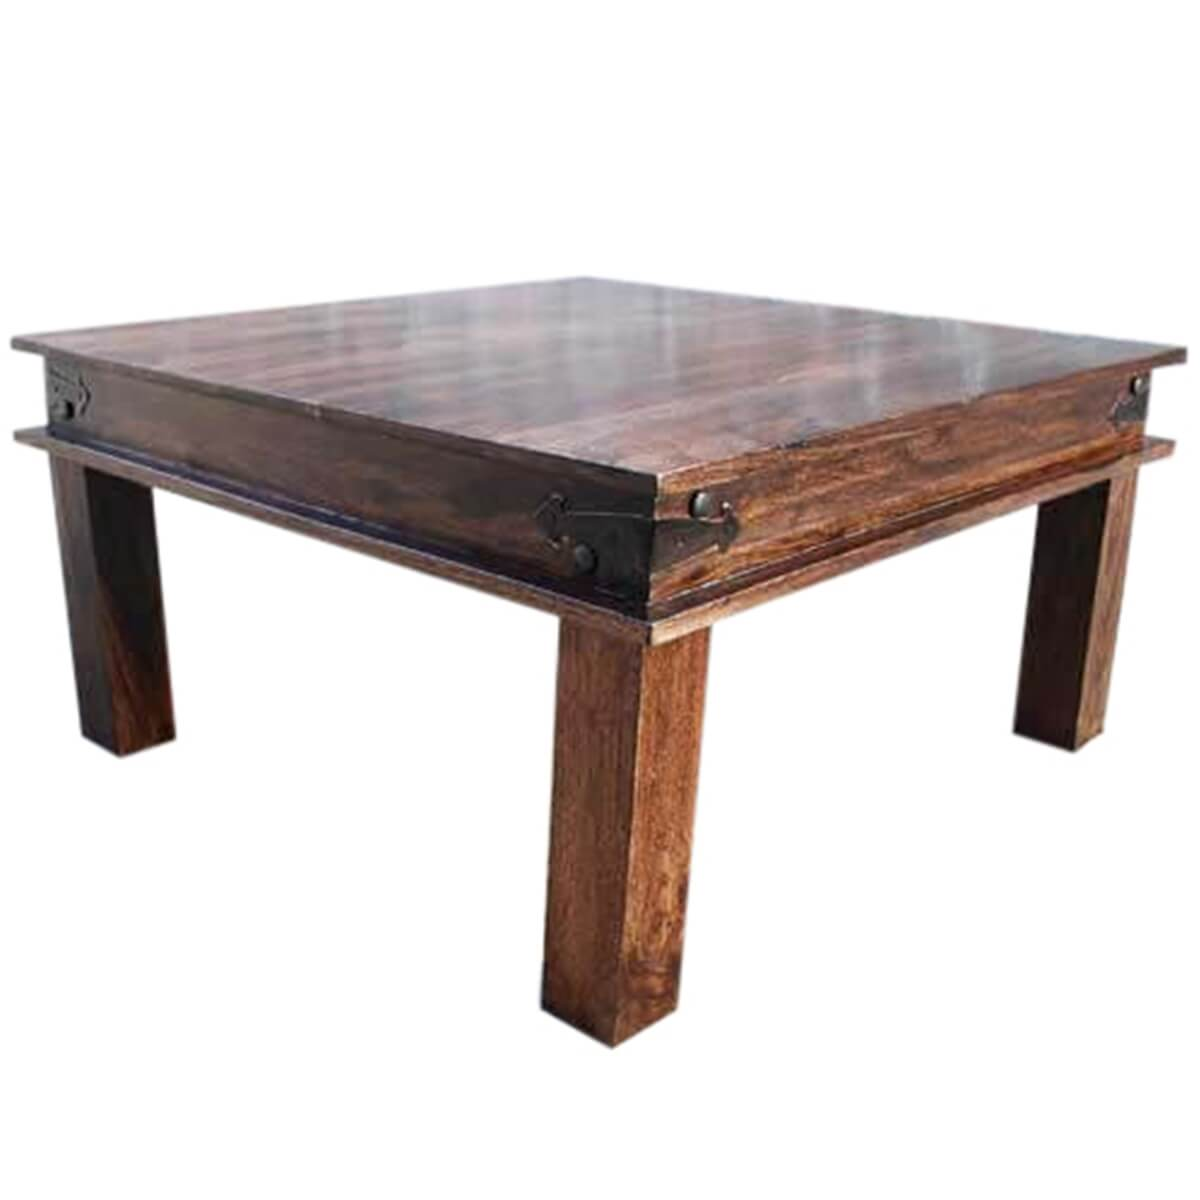 Coffee Tables Shaker Style Espresso Wood Metal Accents Square Cocktail